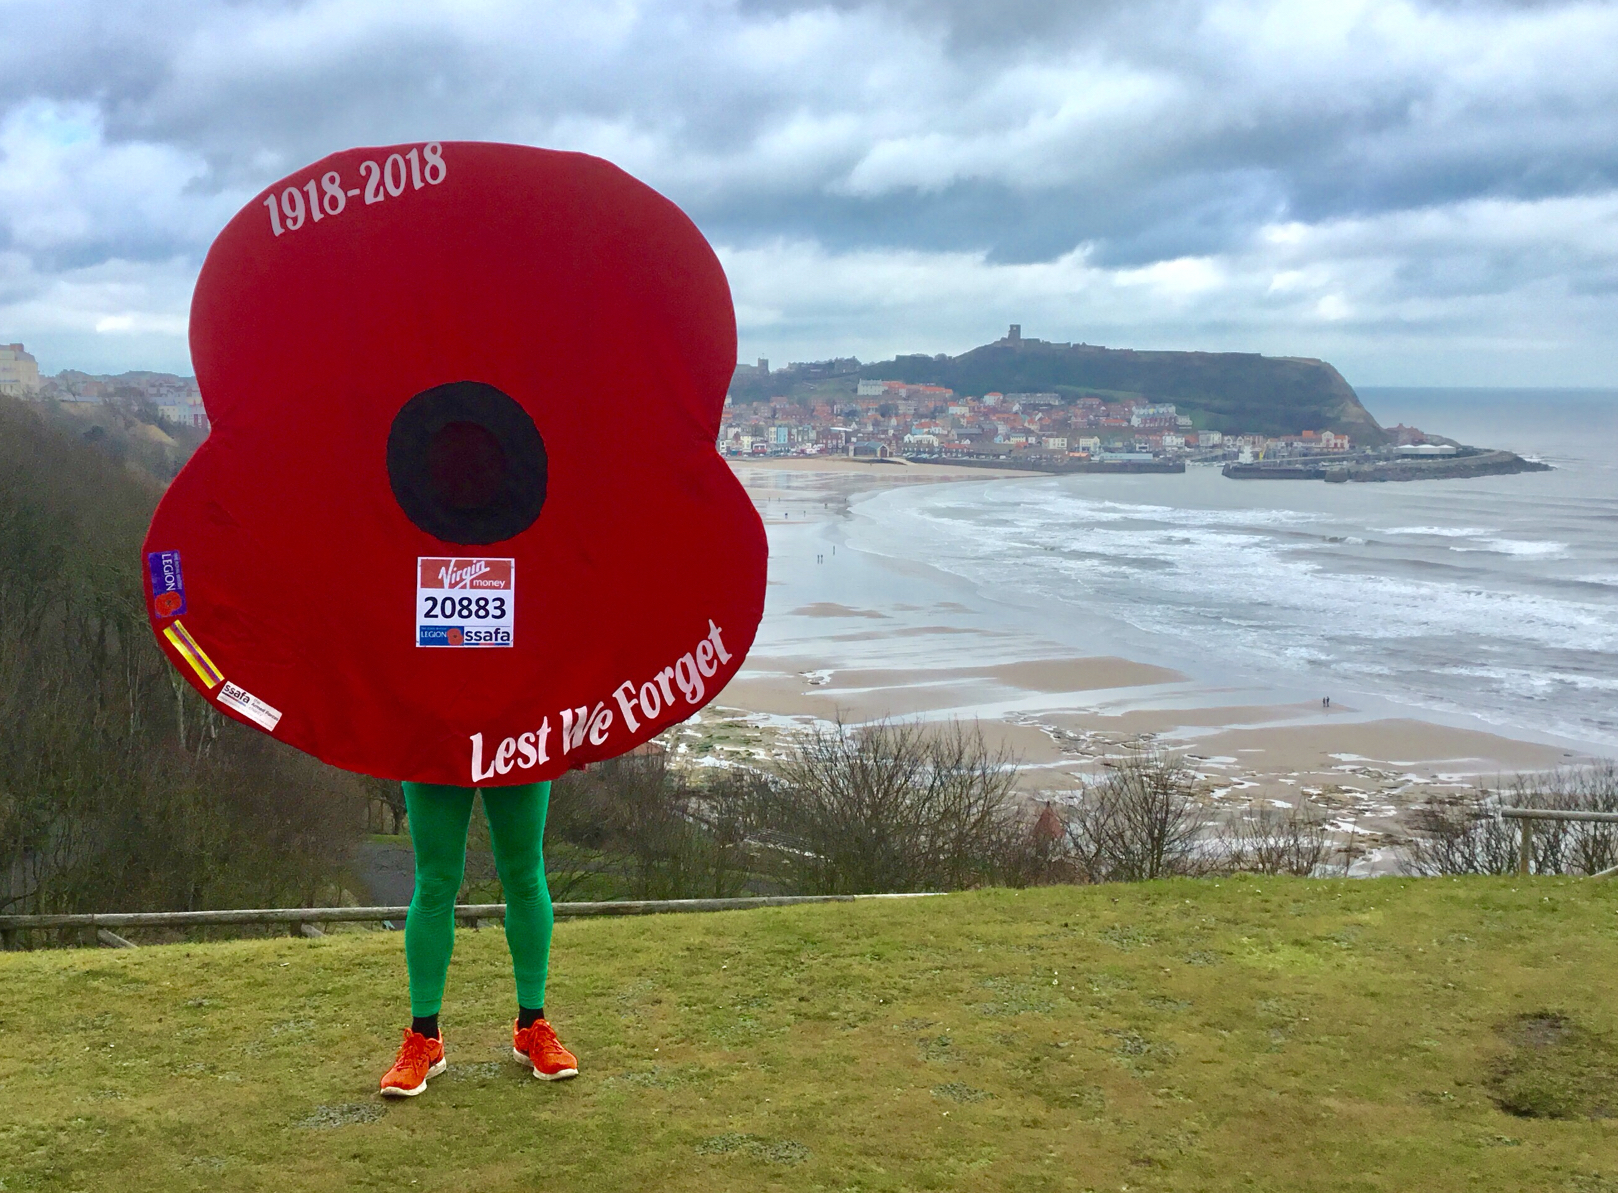 Owen Willis, formerly of Malton, who will be undertaking the London and York marathons dressed as a poppy.